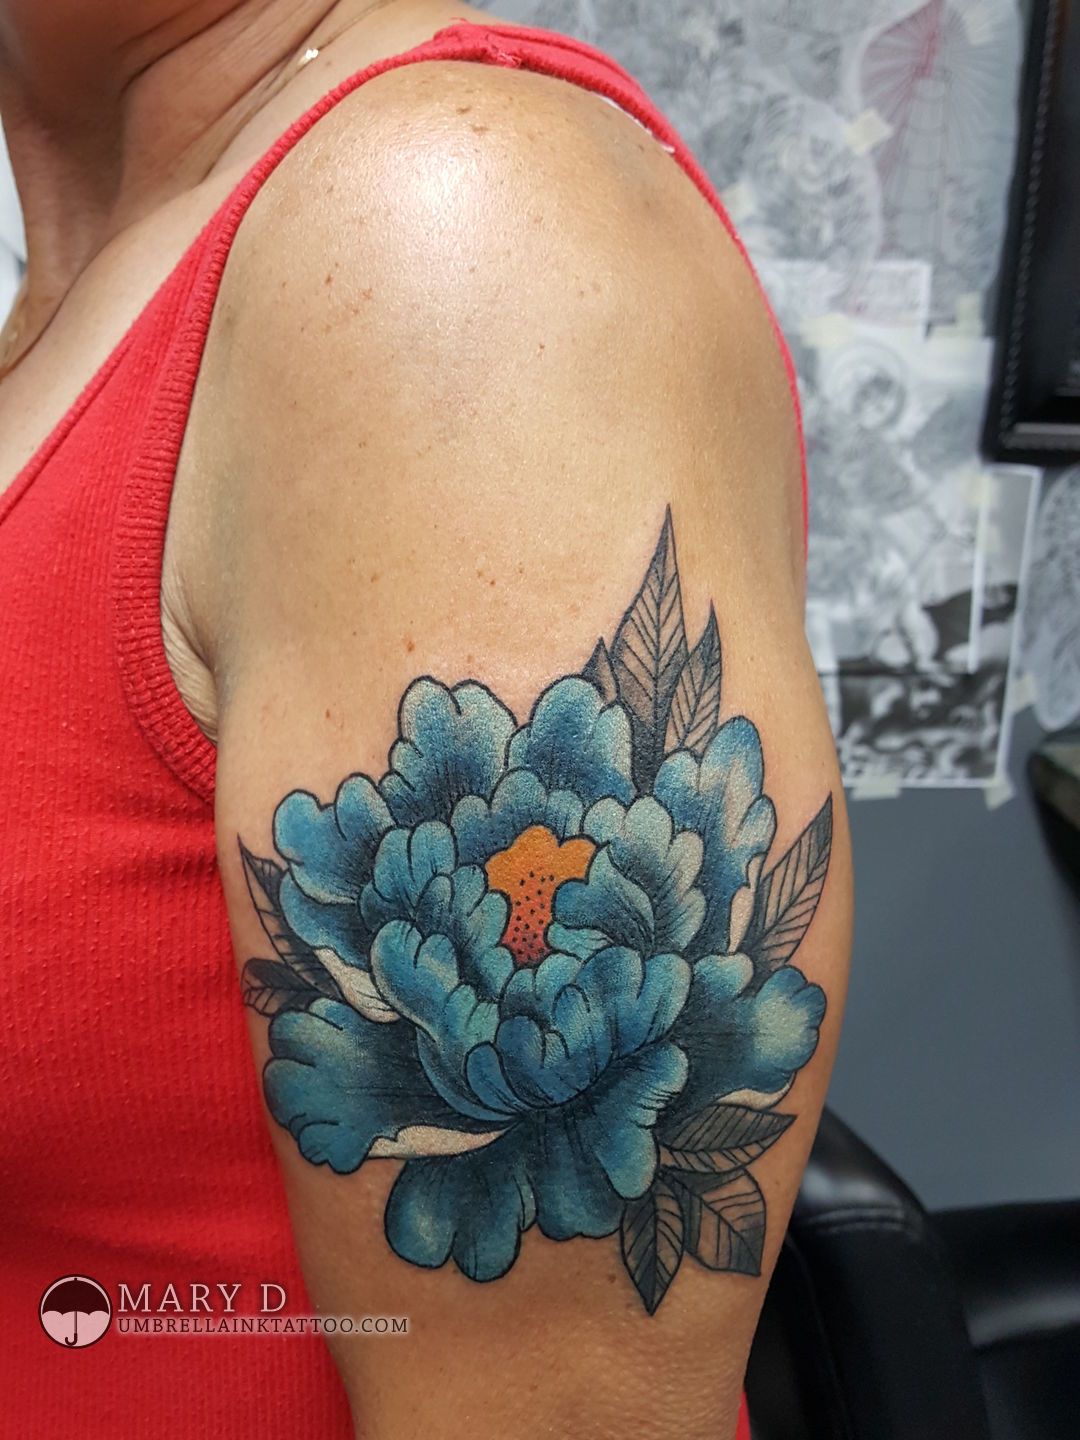 0c39327a2 maryd:sues-wip-coverup-coverup-tattoo-bold-tattoo-color-work ...